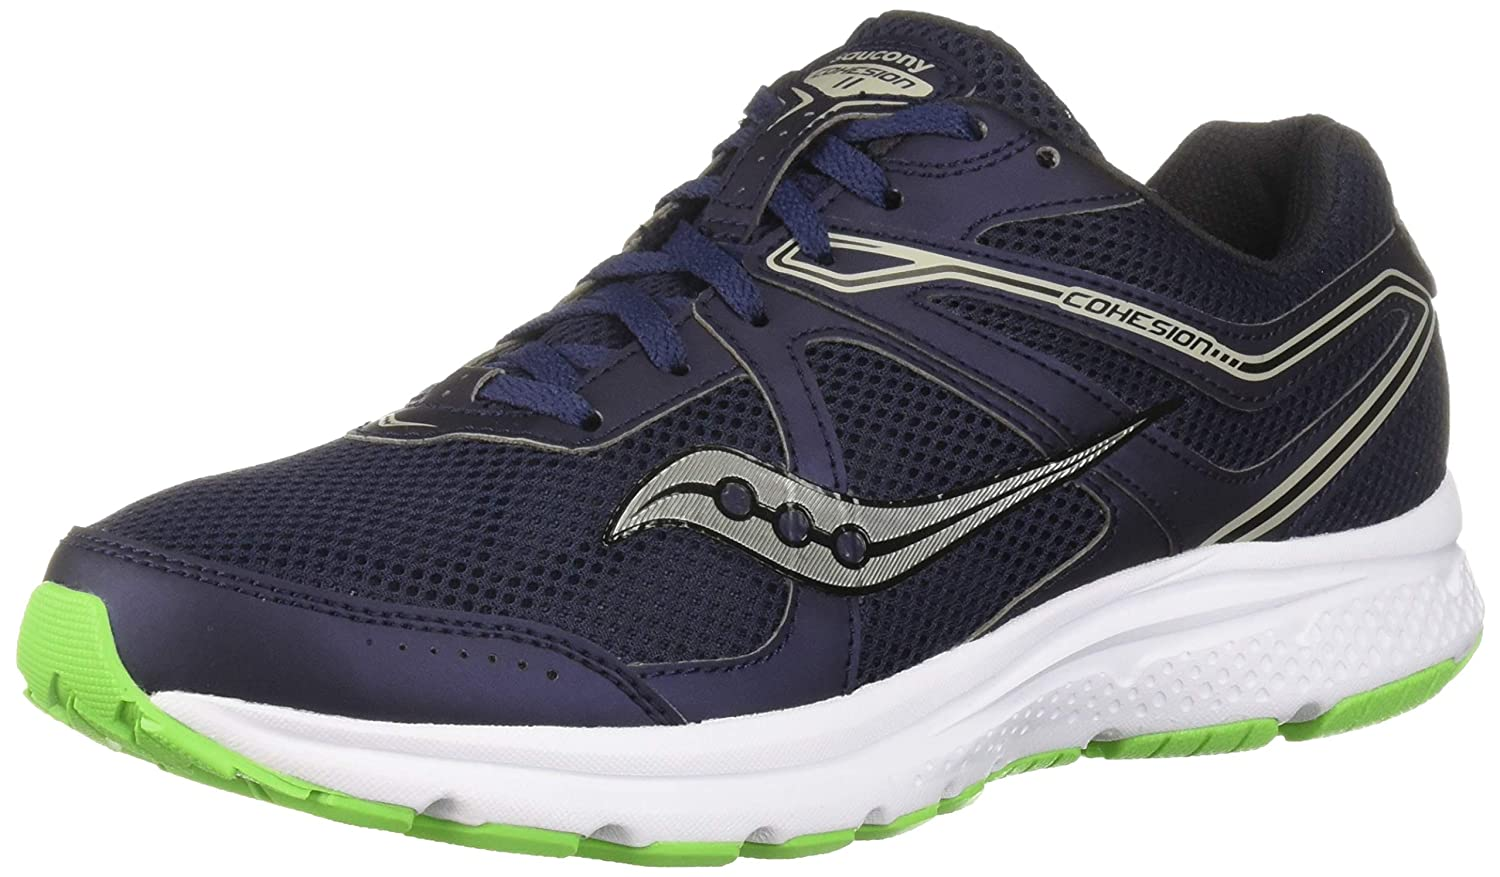 Saucony Men's Cohesion 11 NavySlime 7.5 E US: Buy Online at